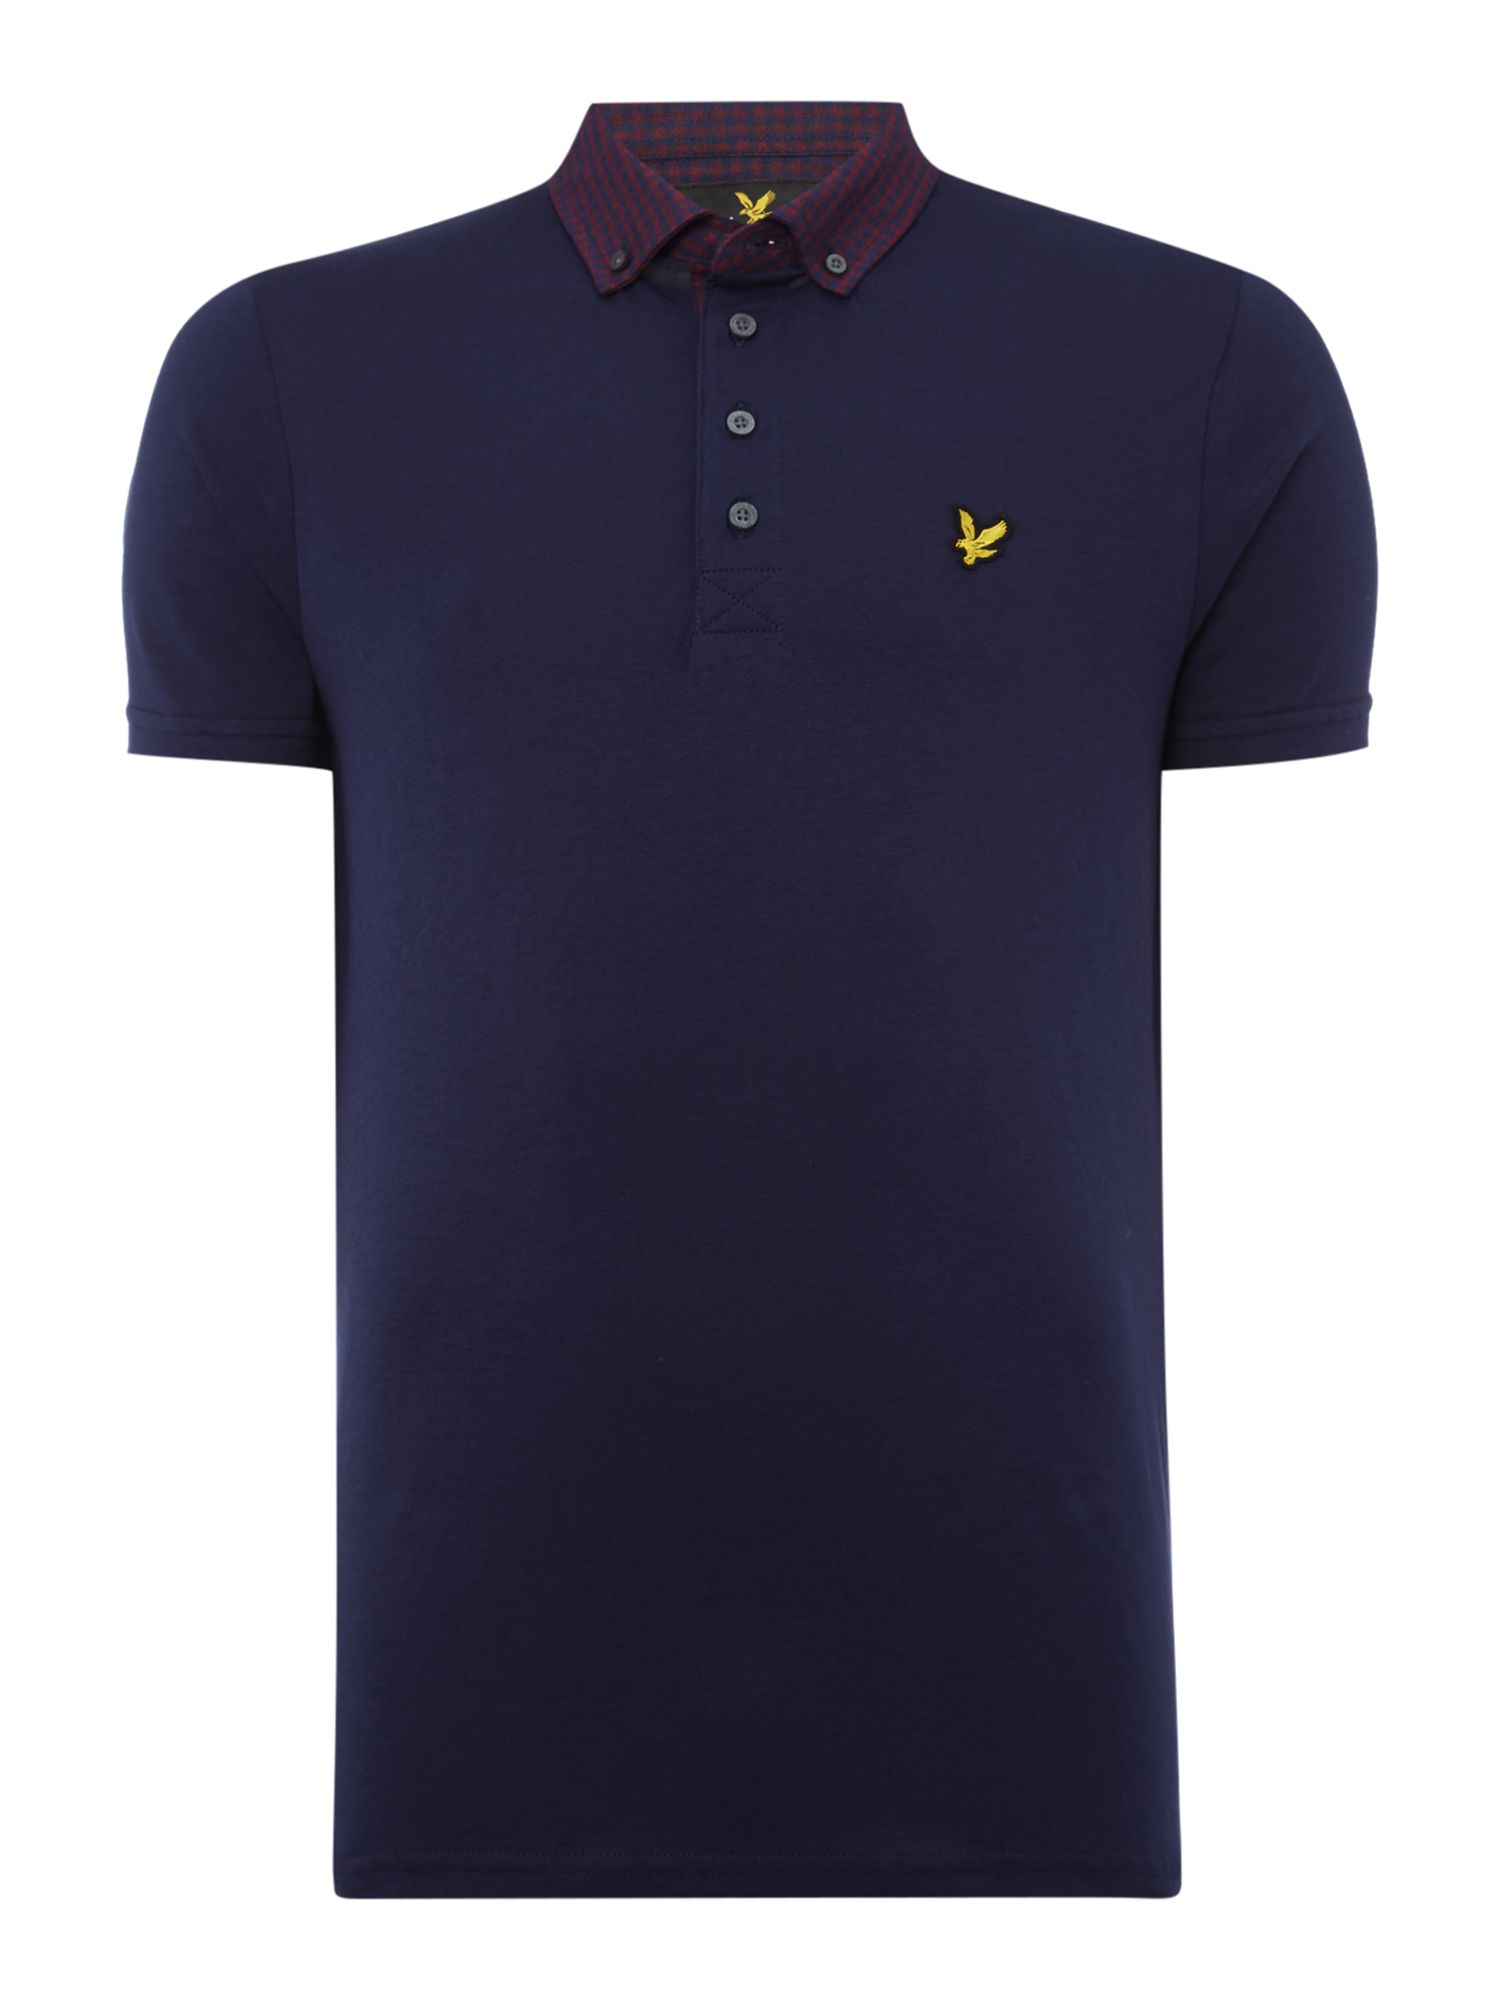 Lyle and Scott Men's Lyle and Scott Short sleeve woven collar jersey polo shirt, Navy